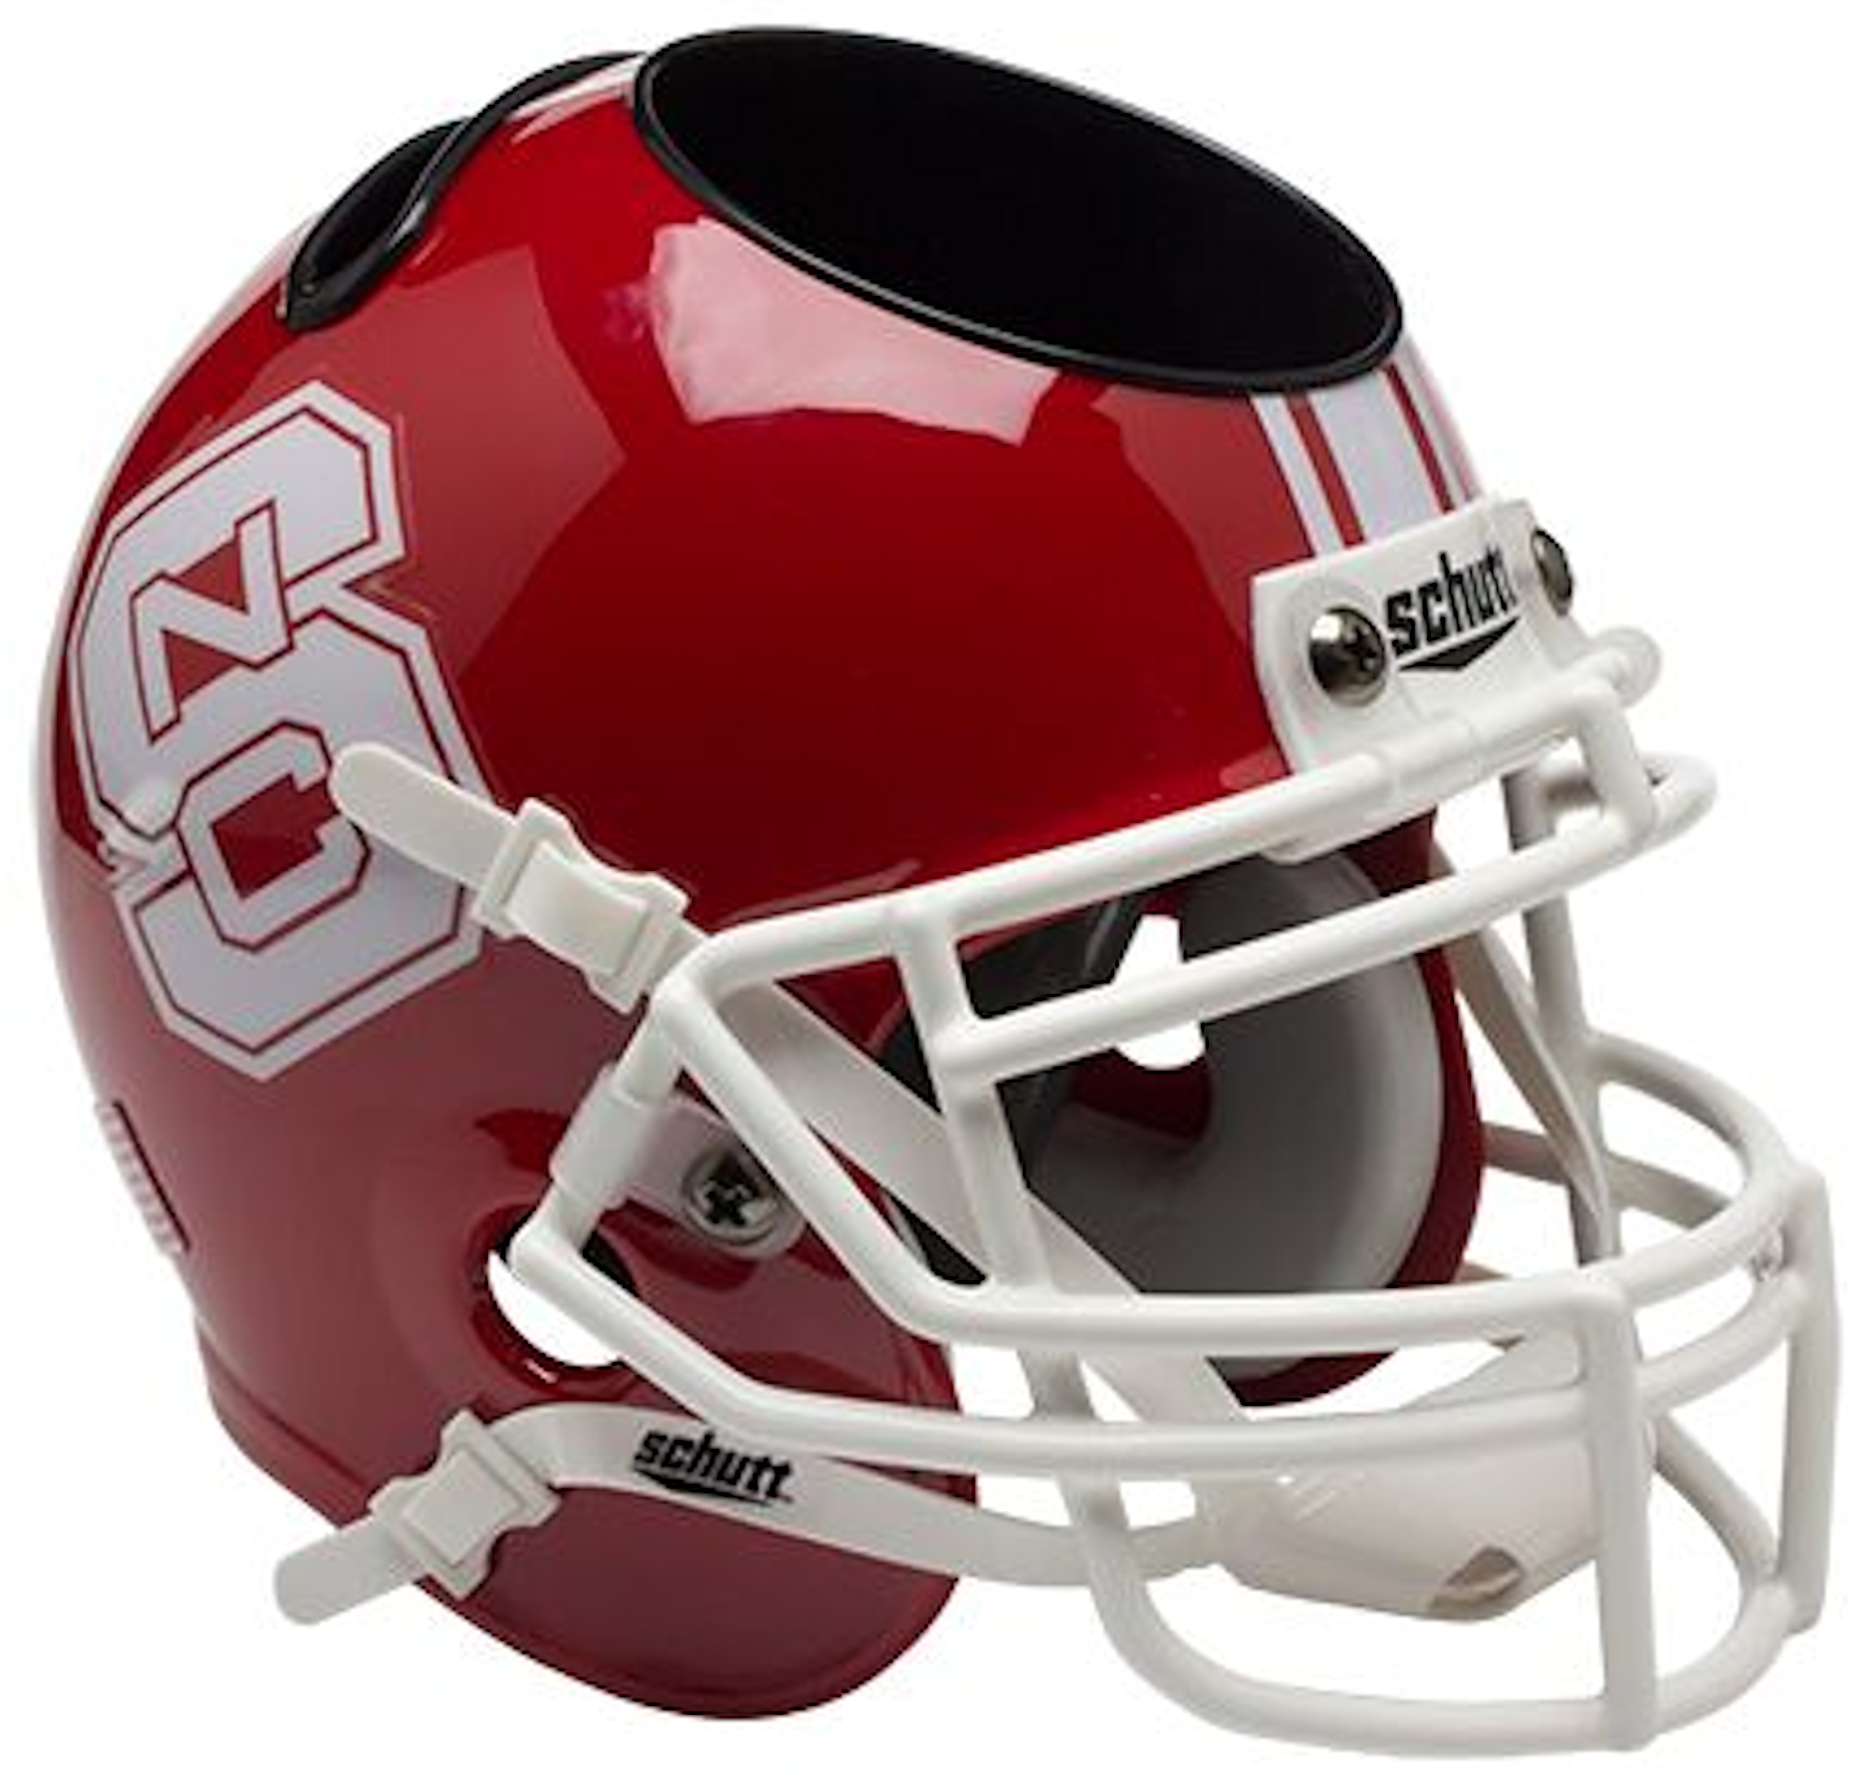 North Carolina State Wolfpack Miniature Football Helmet Desk Caddy <B>Red</B>